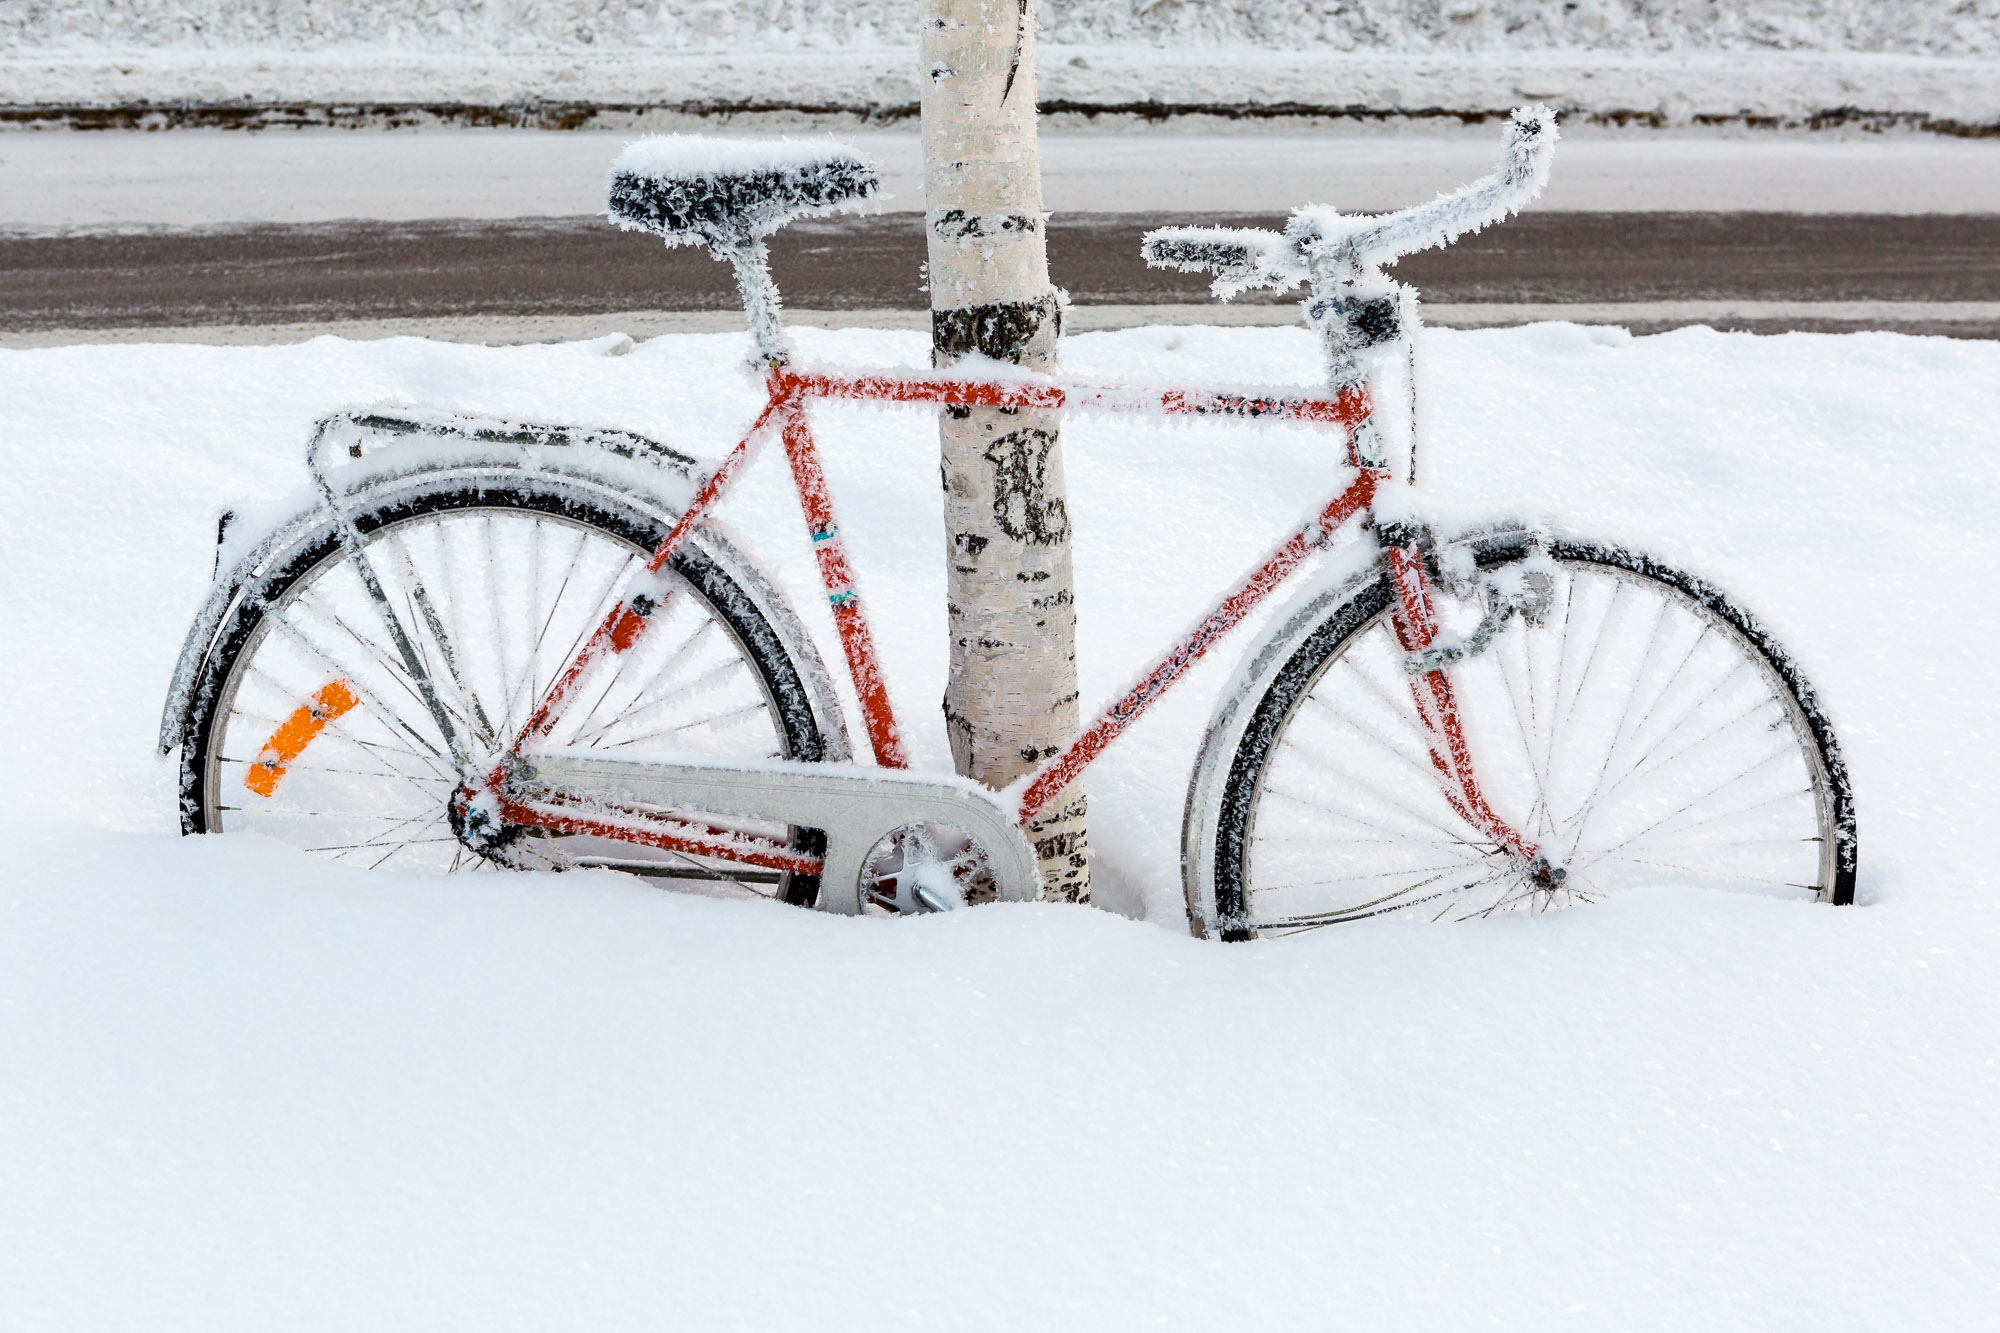 Frozen bike, Luleå, Sweden January 2017, Ben Lee Photography